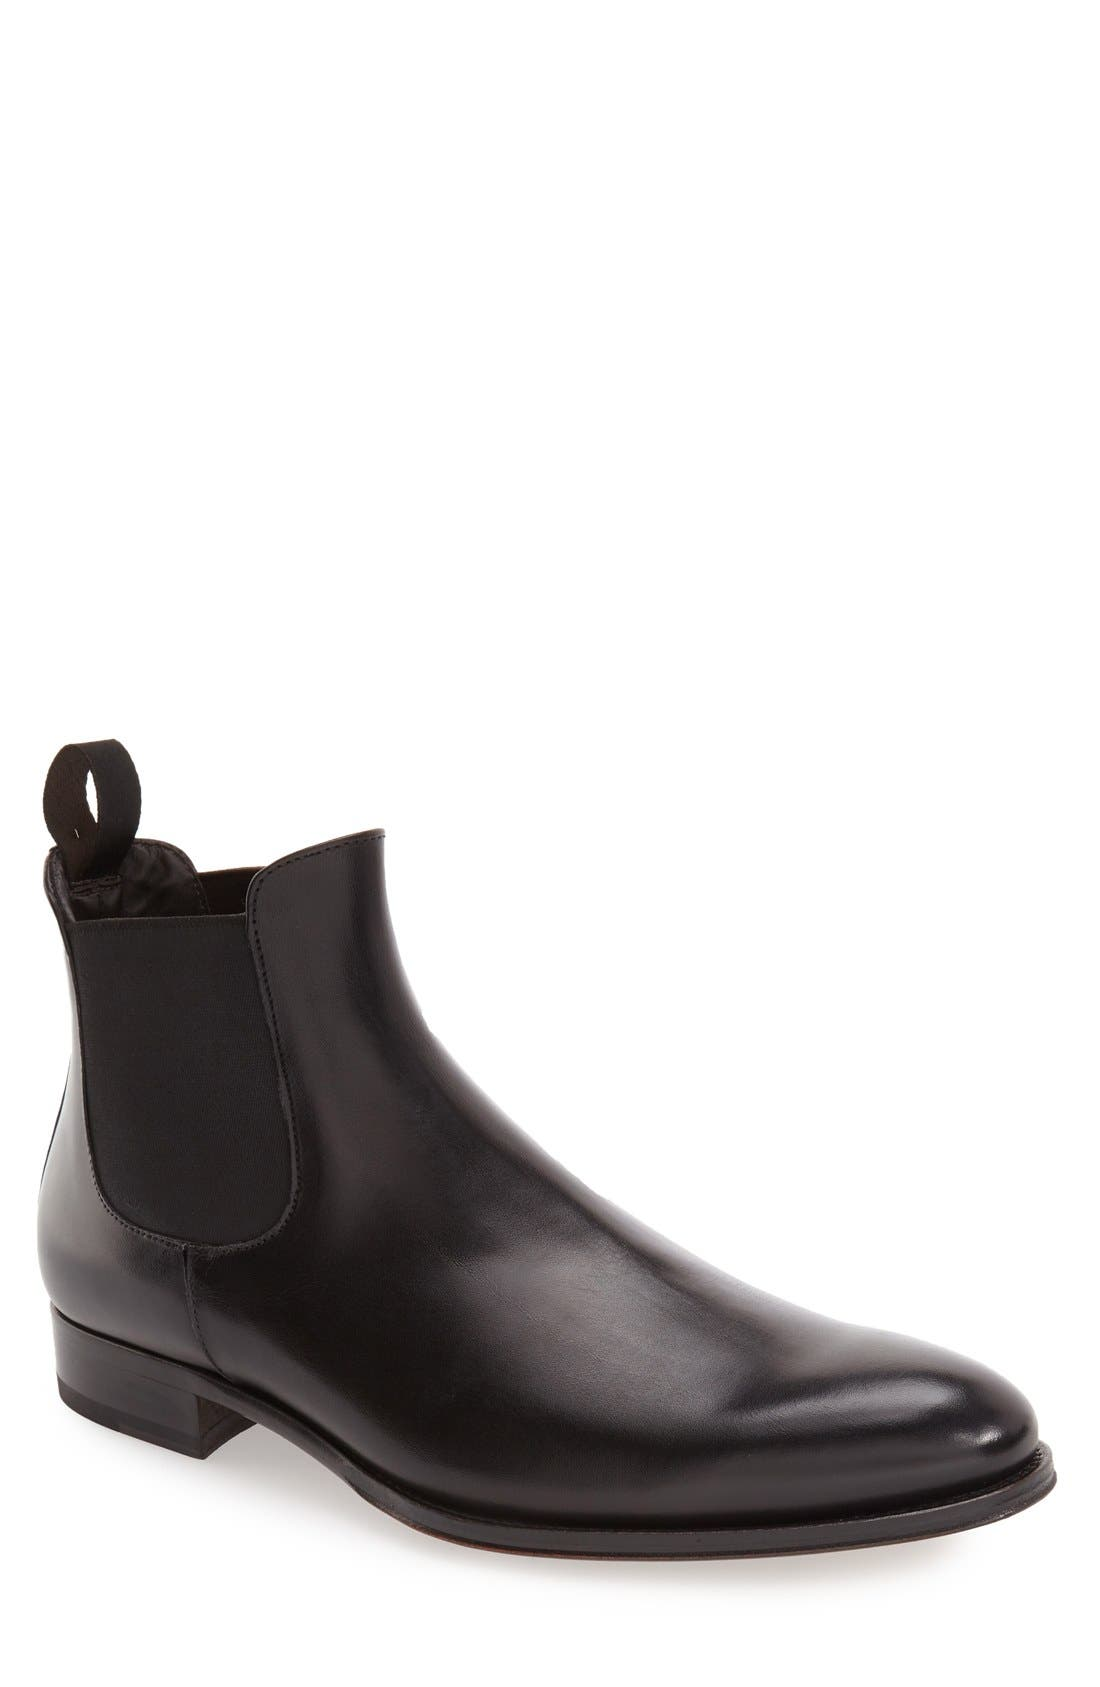 TO BOOT NEW YORK, Toby Chelsea Boot, Main thumbnail 1, color, BLACK LEATHER